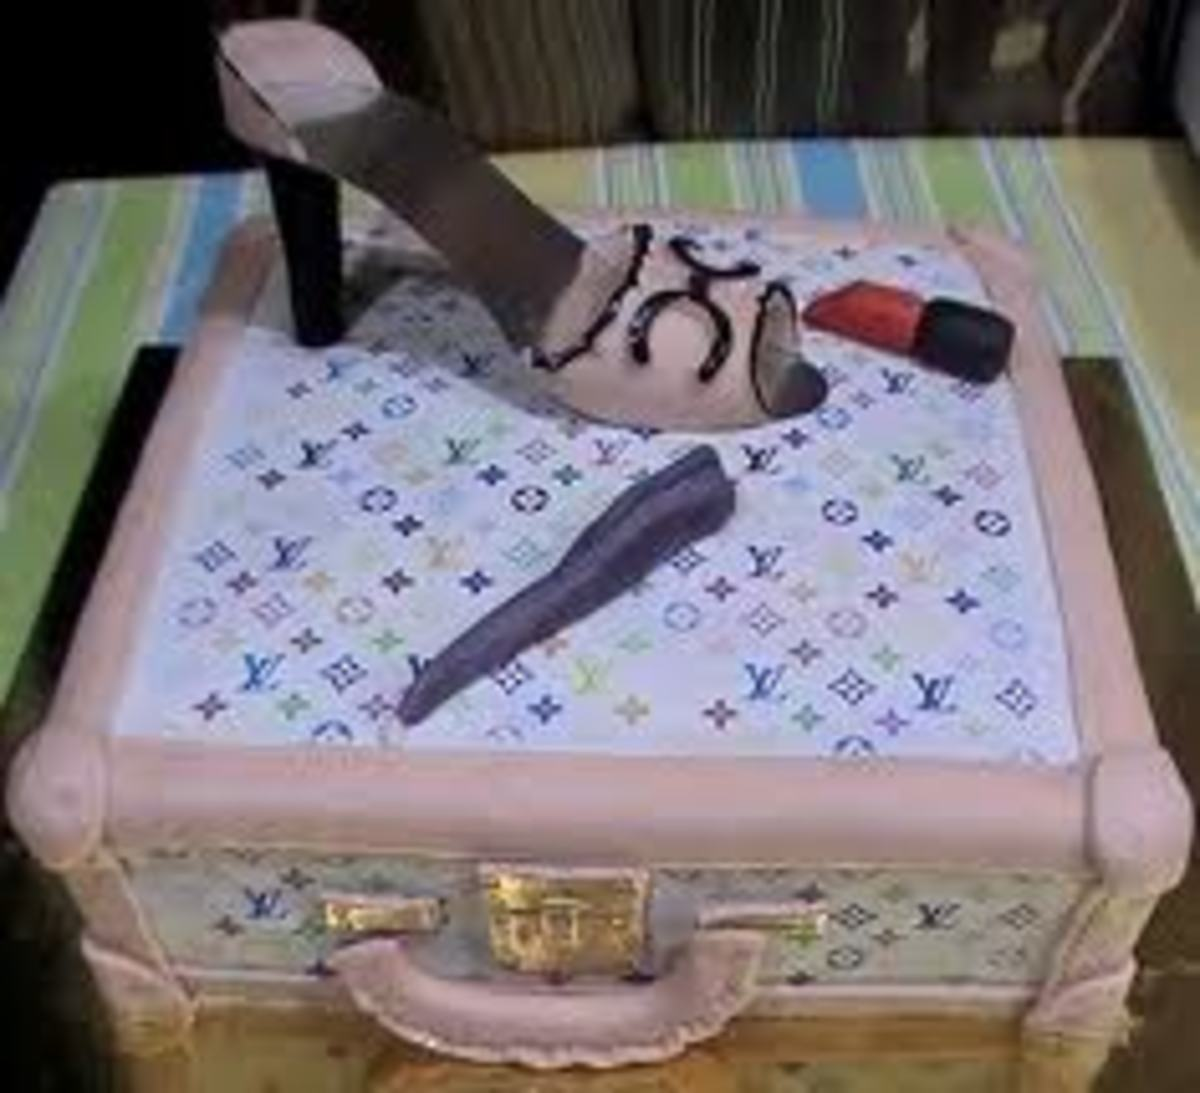 This cake is definitely for a fashionista mimicking both Chanel and Louis Vuitton this is a signature in it's own right. I love it.